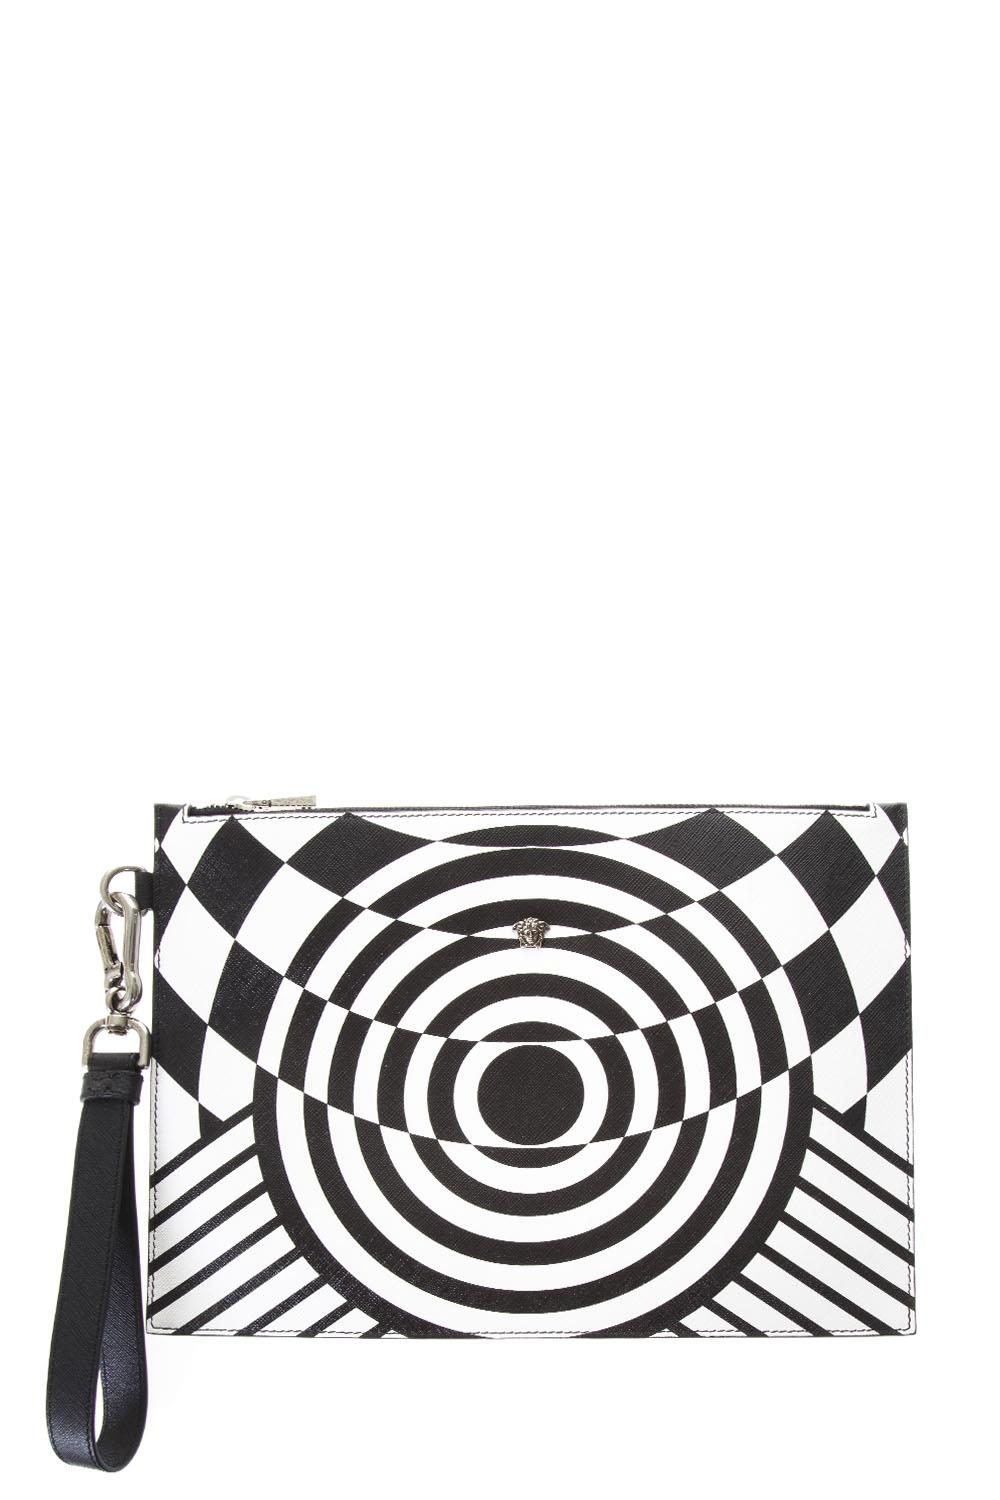 59ae672a2f OPTILLUSION WHITE & BLACK LEATHER CLUTCH SS 2018